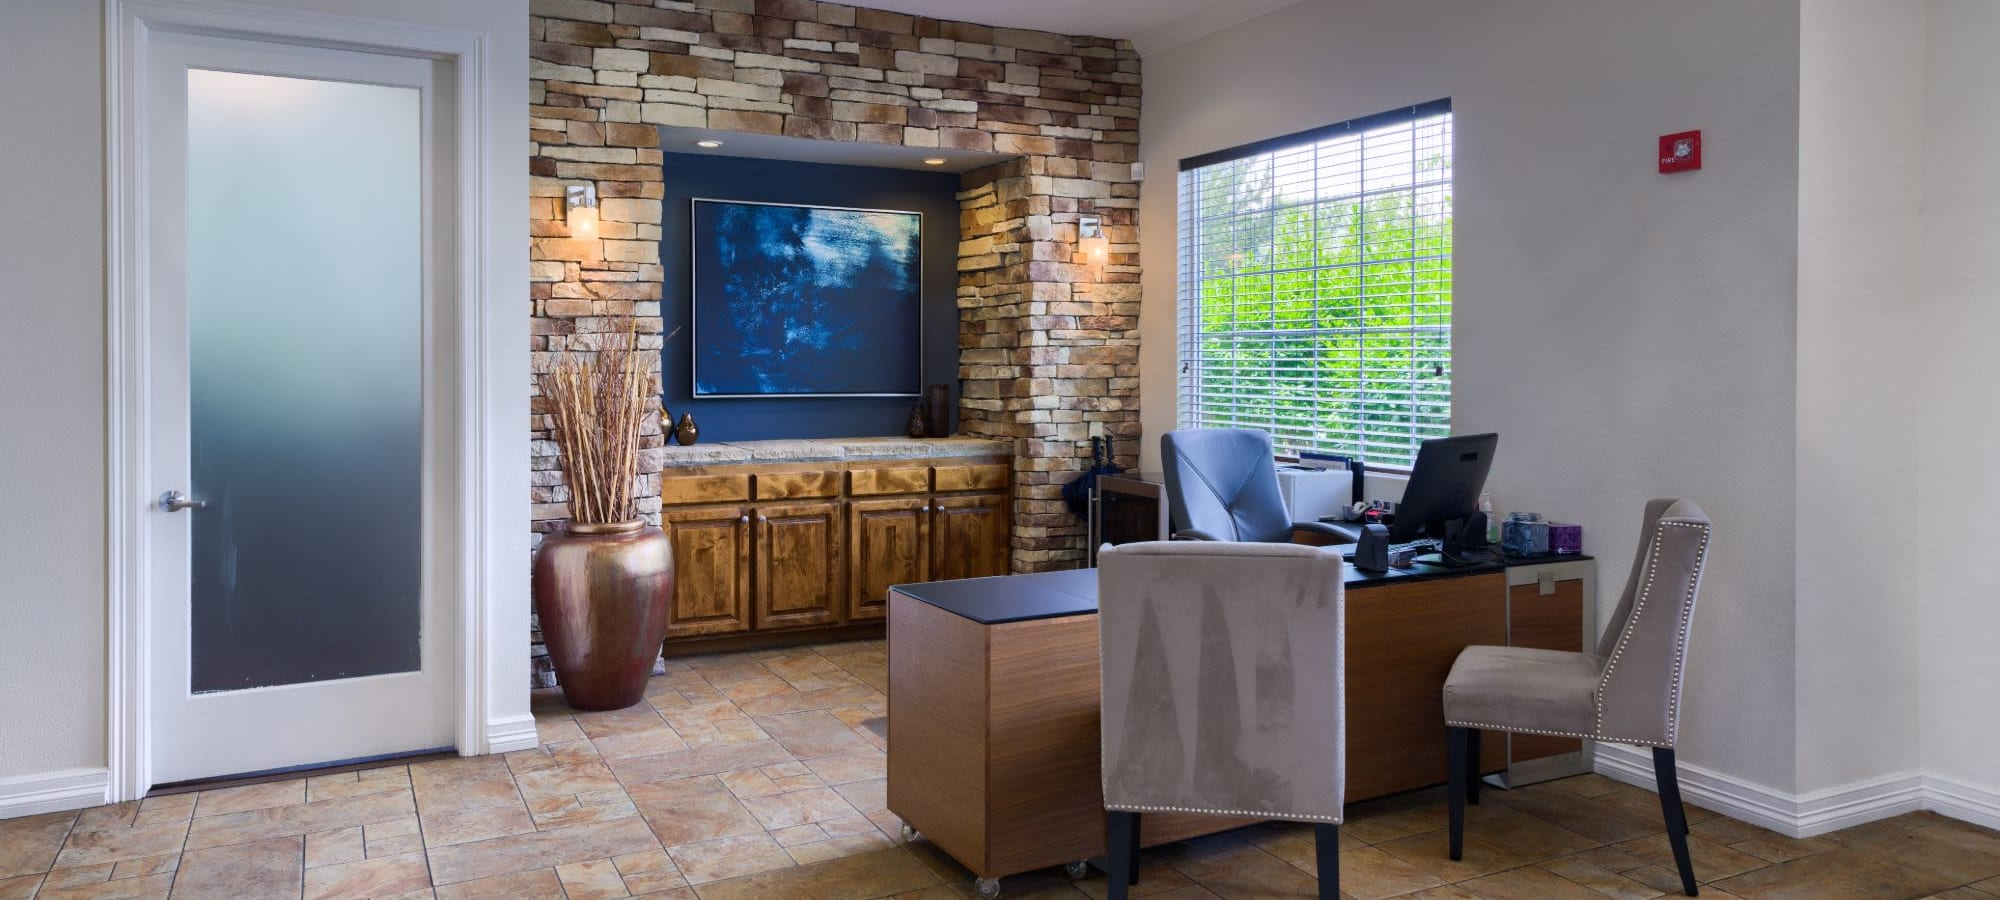 Resident information for Whisper Creek Apartment Homes in Lakewood, Colorado